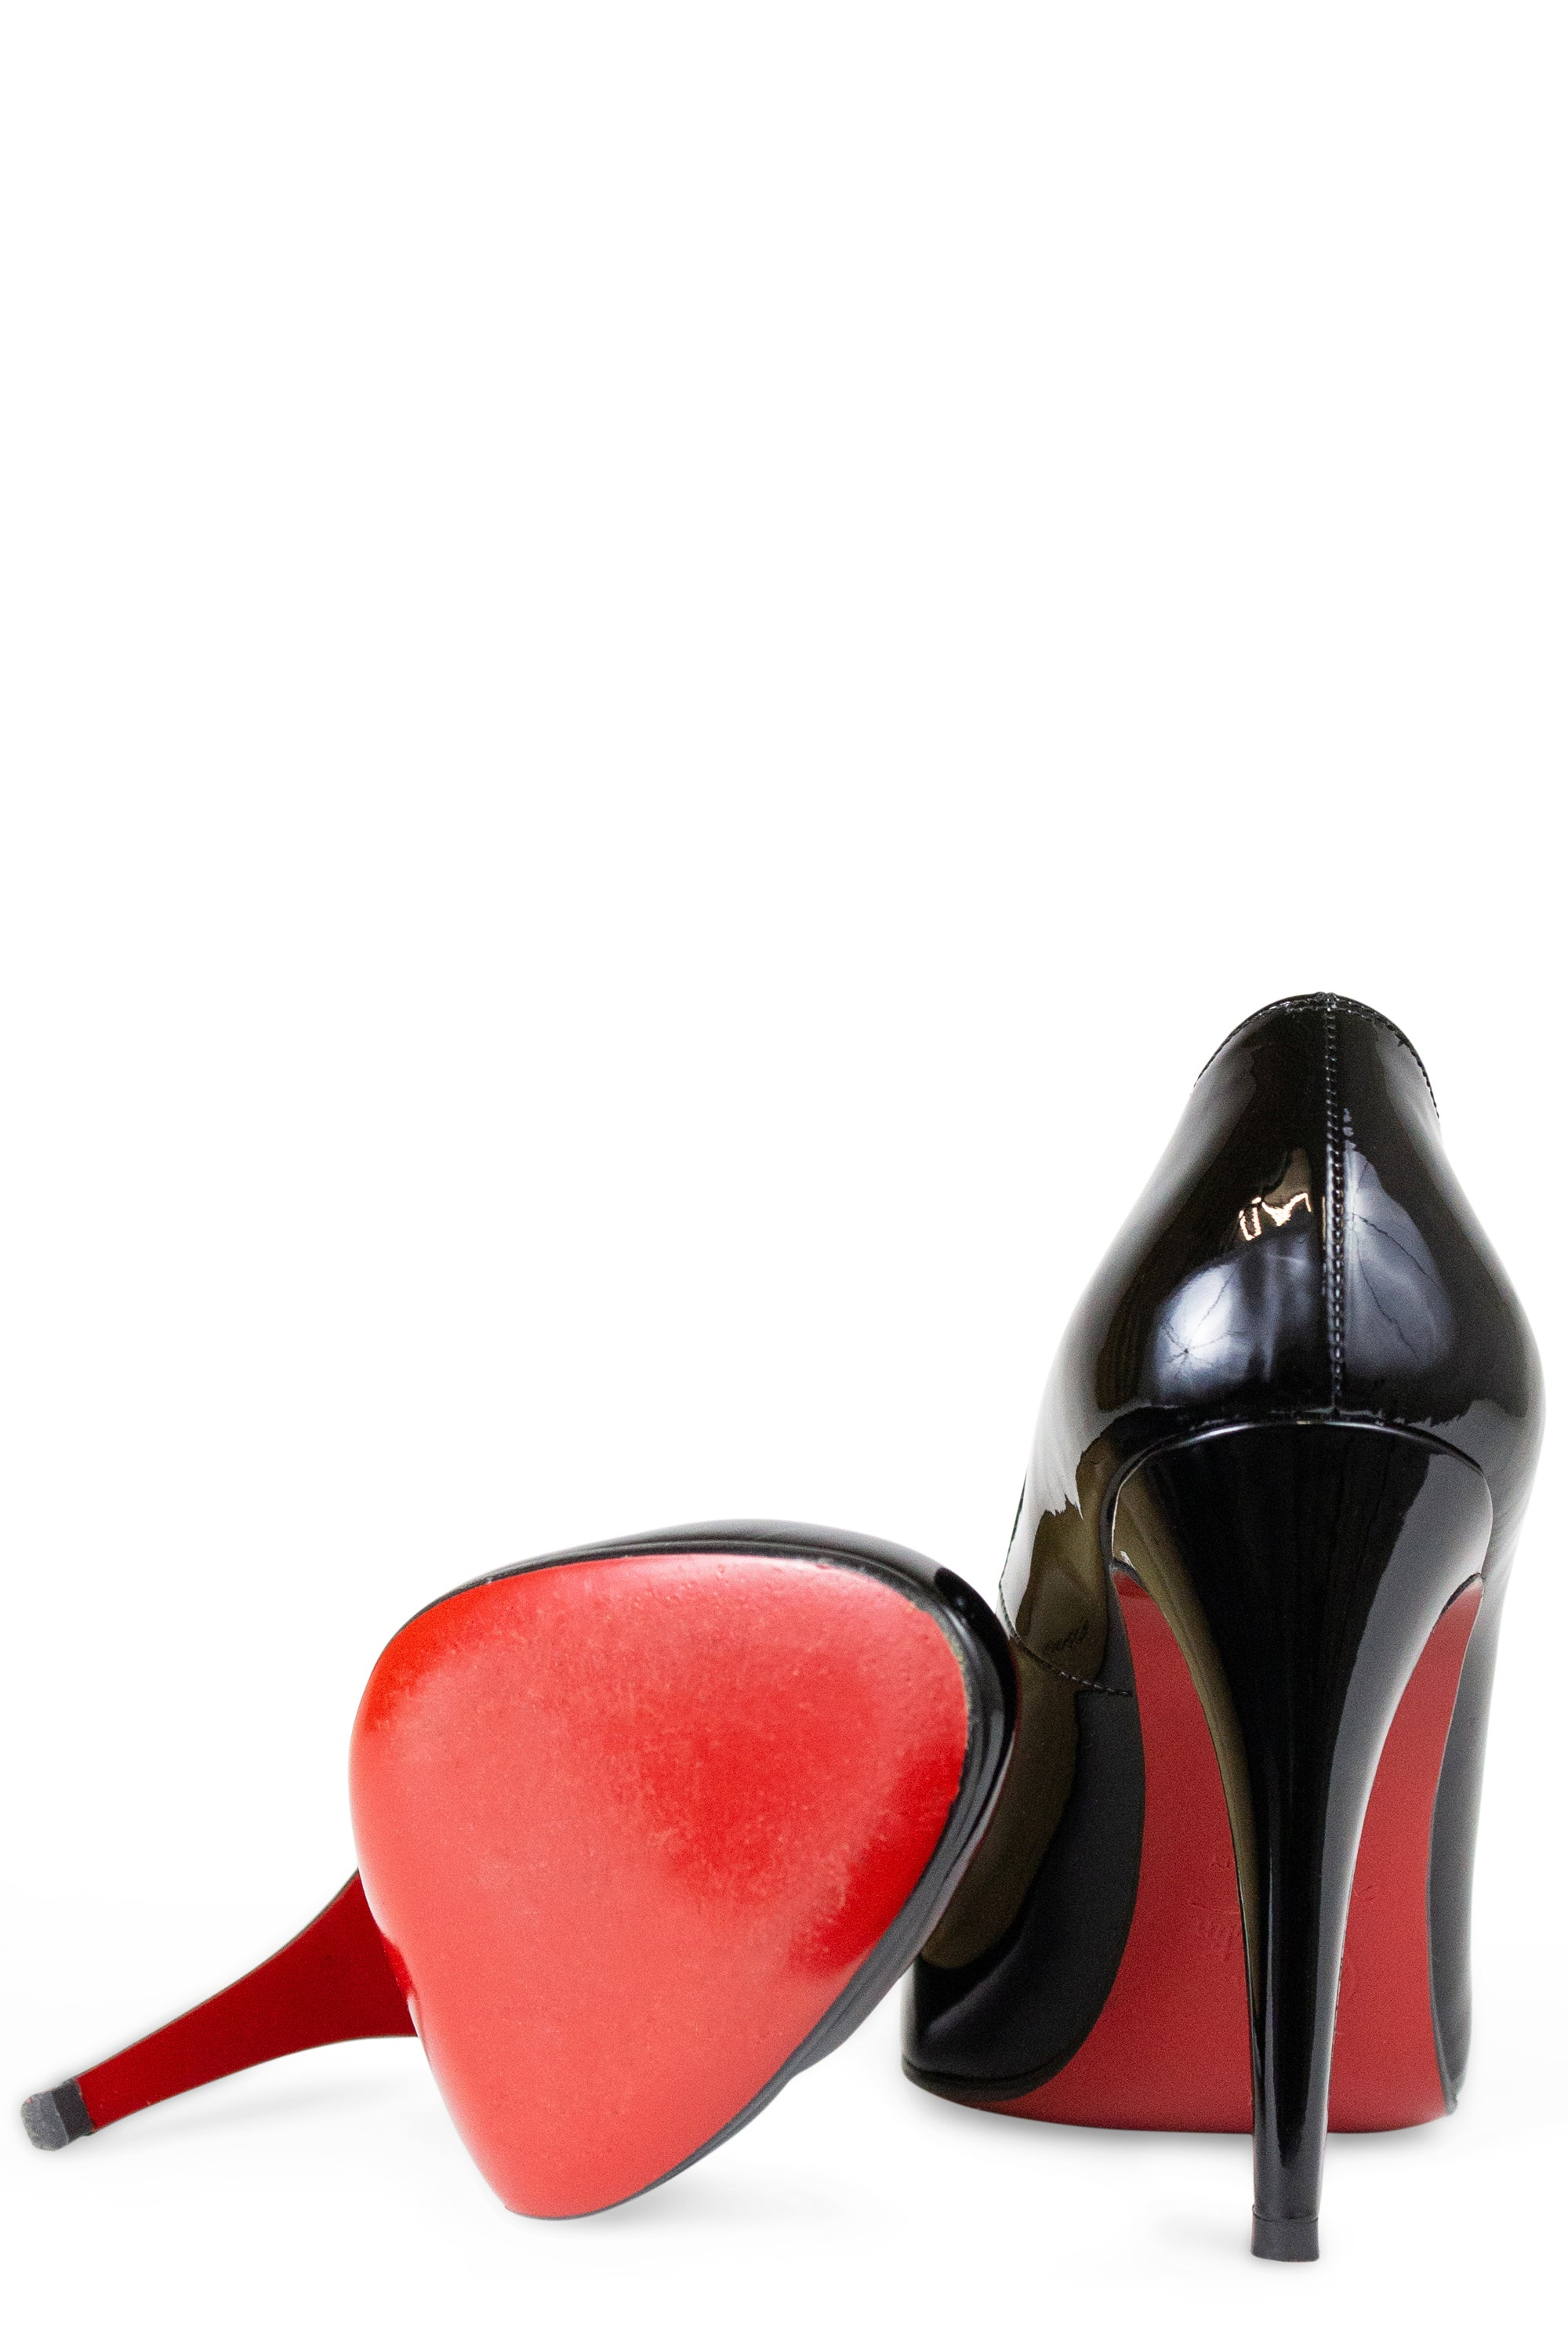 LOUBOUTIN Fifille Patent Pumps